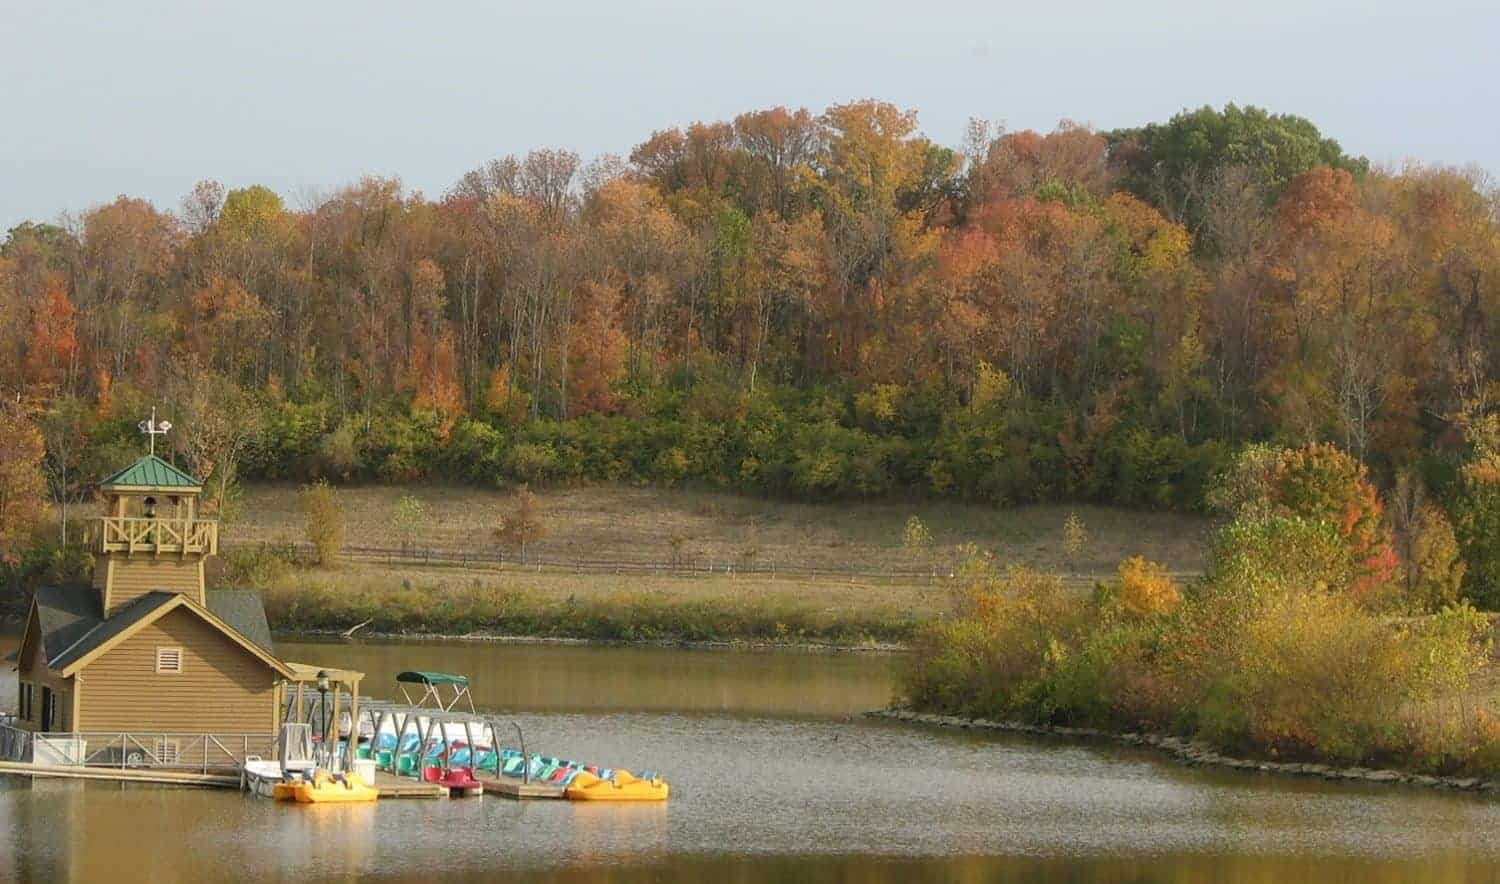 Winton Woods harbor in the fall, one of the Great Parks of Hamilton County